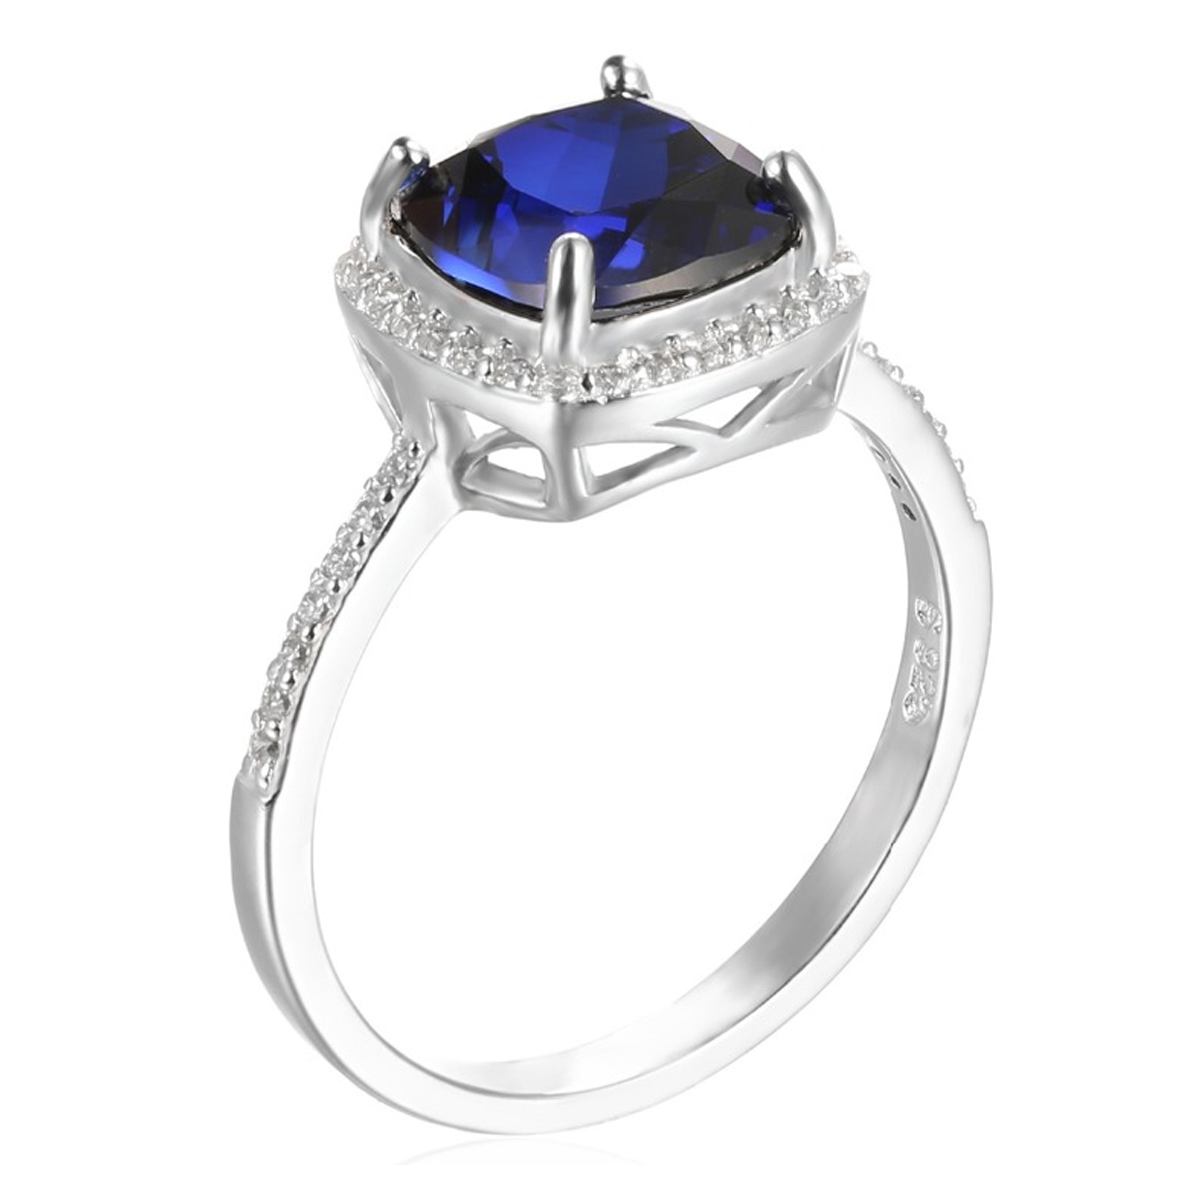 cut piece ring cushion sterling silver sapphire sets halo jewelry lajerrio